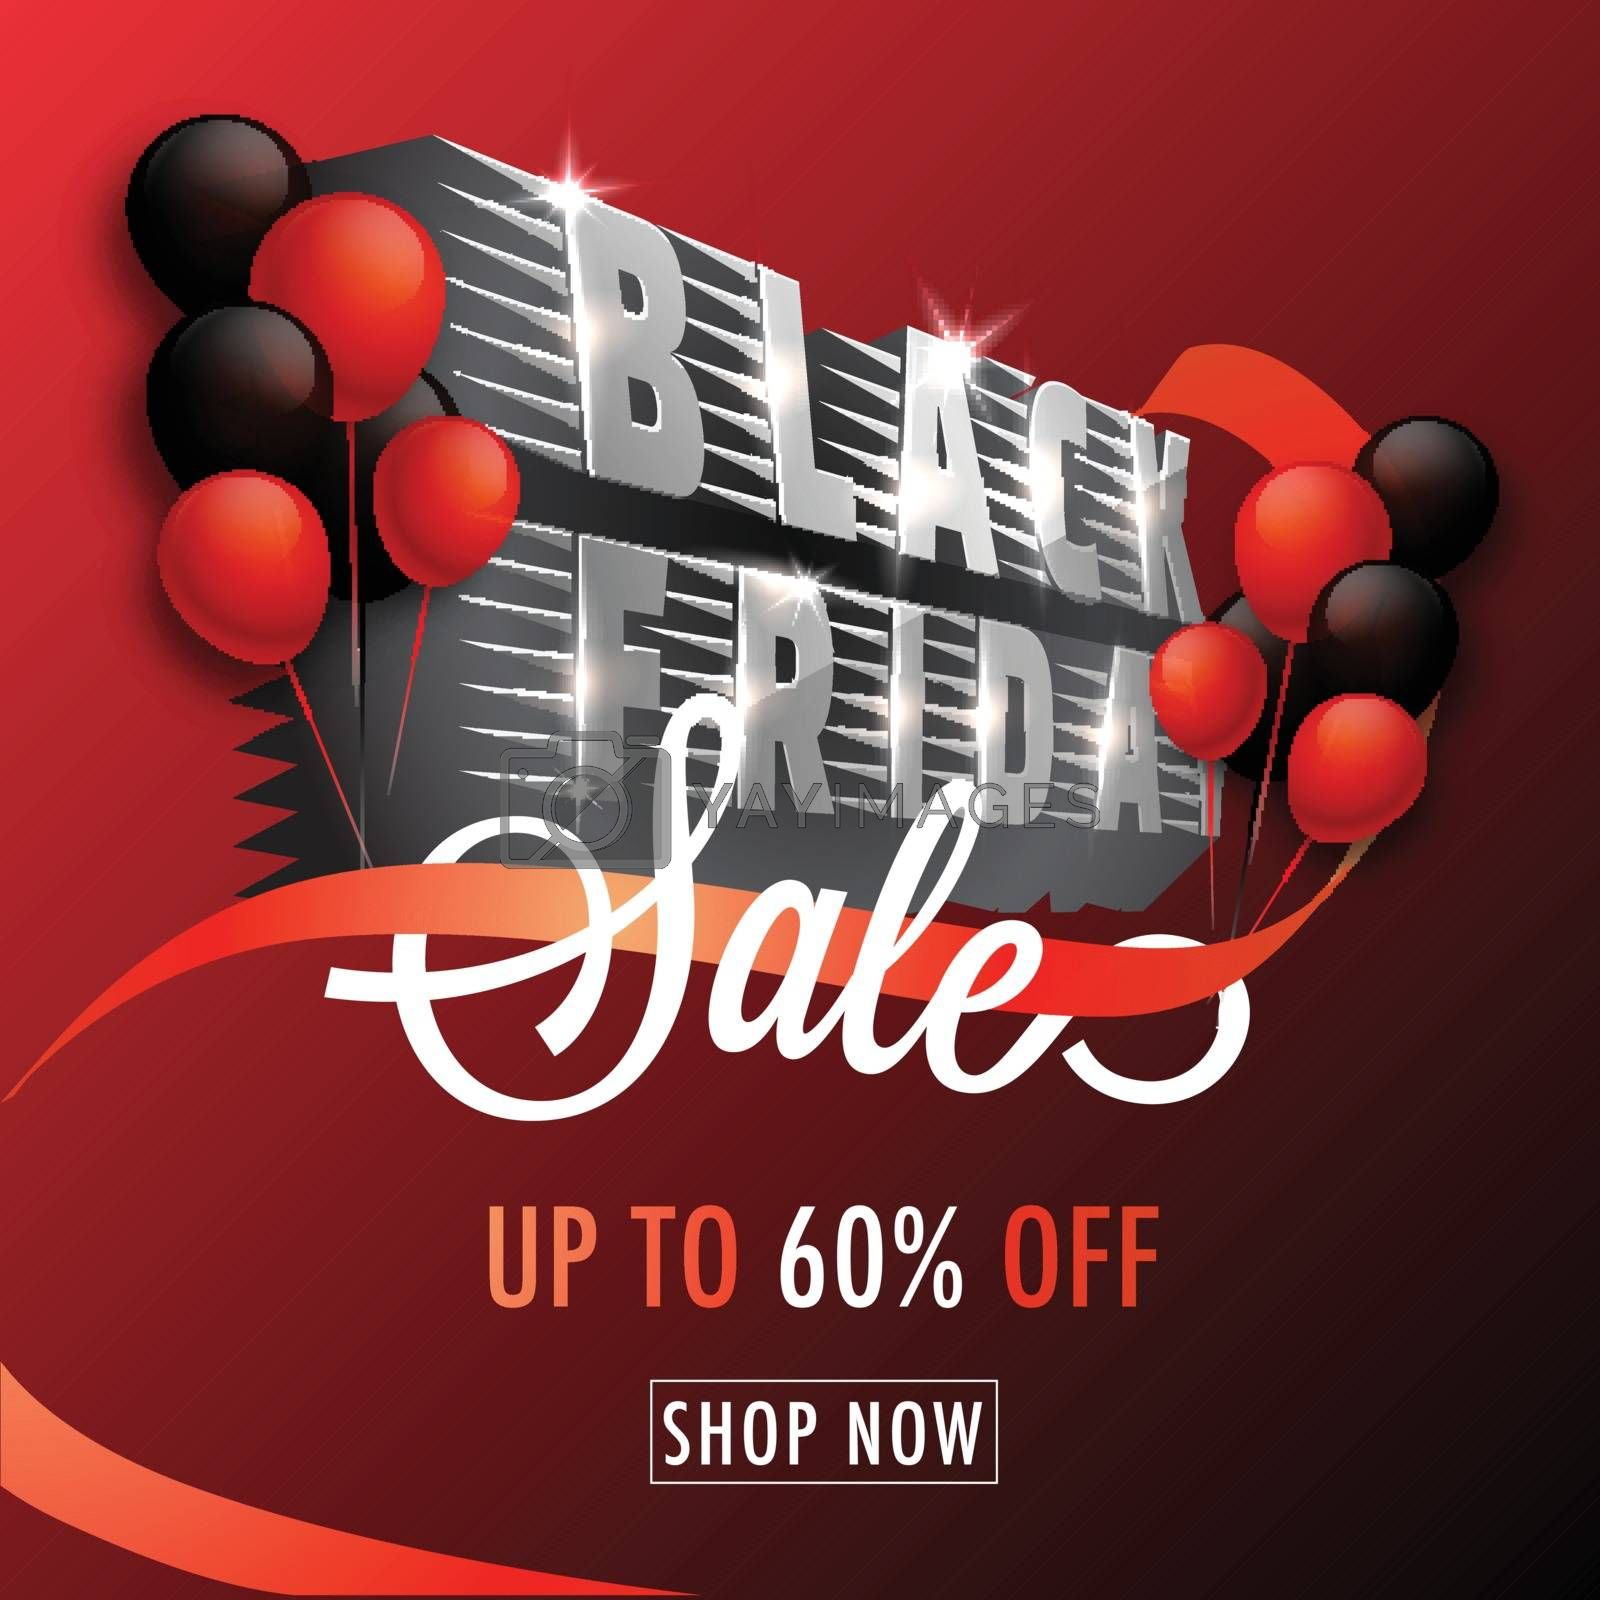 3D text Black Friday with 60% discount offer on glossy red background. Advertising template or flyer design.